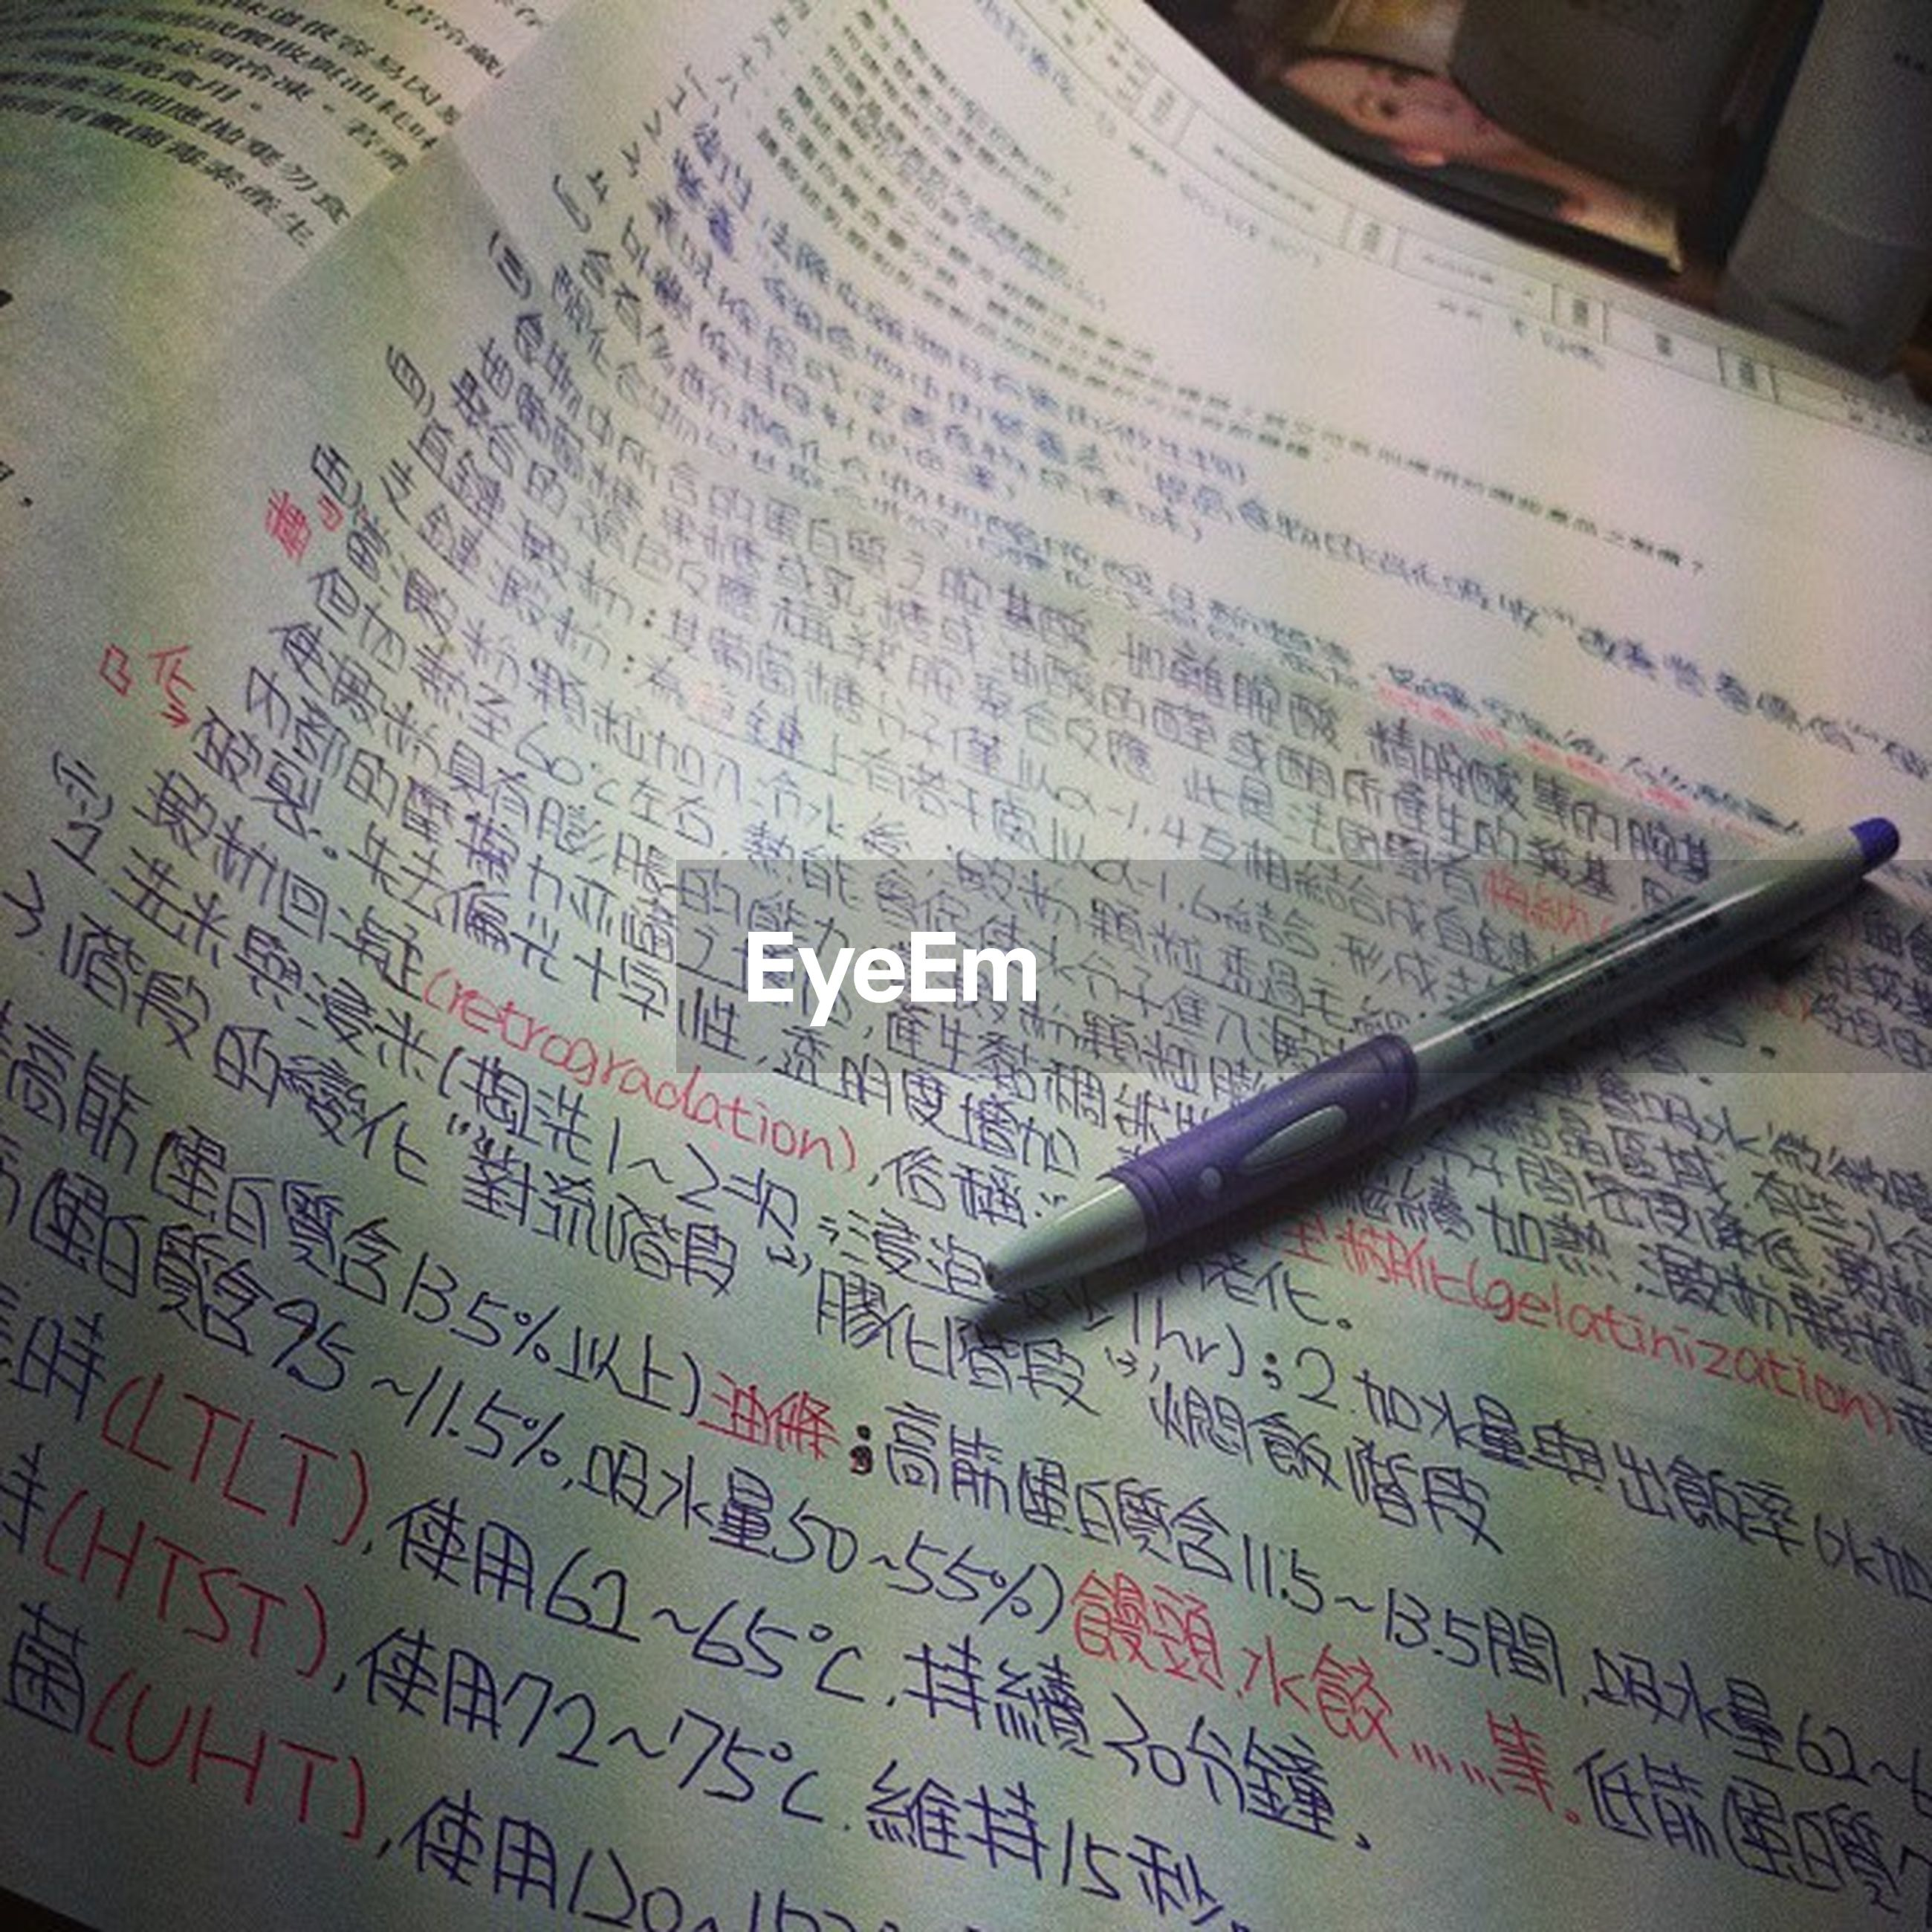 indoors, text, book, paper, education, table, communication, still life, western script, pen, close-up, high angle view, pencil, handwriting, page, open, learning, document, no people, wealth